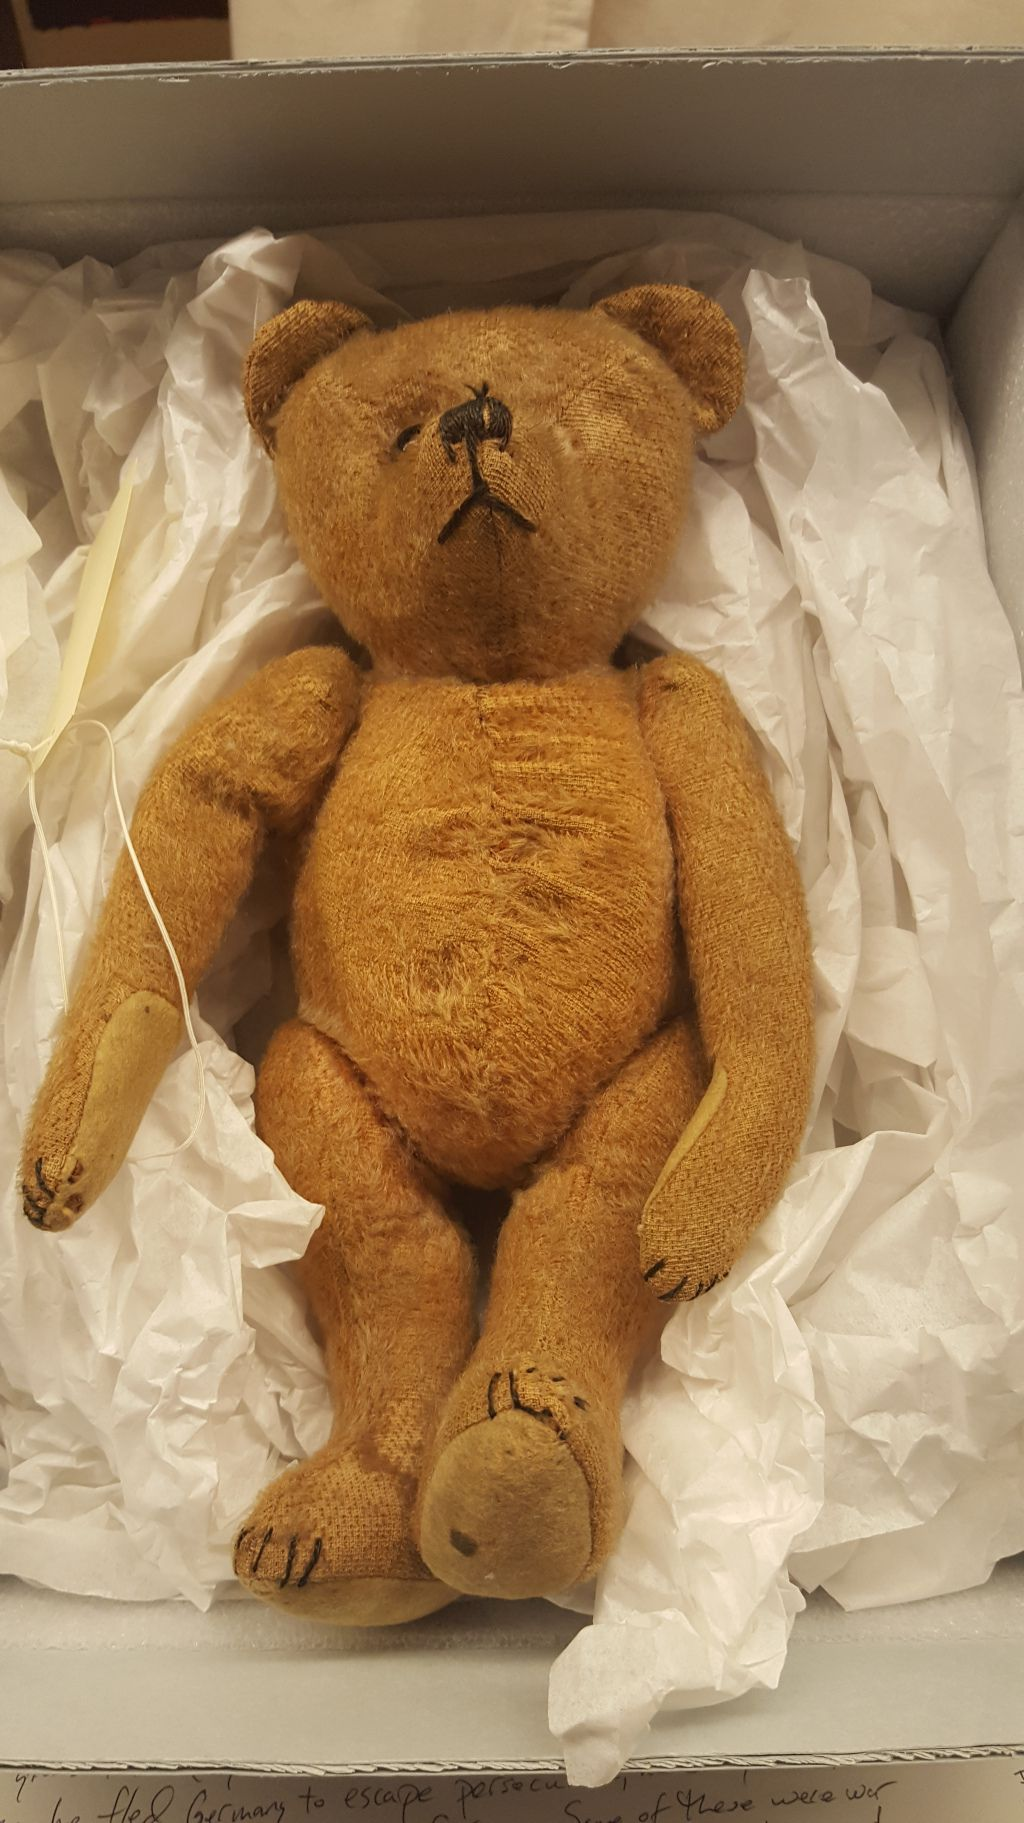 """A teddy bear is one of the many artifacts included in a new exhibit by photographer Jim Lommasson titled """"Stories of Survival: Object, Image, Memory,"""" at the Illinois Holocaust Museum and Education Center.   Miriam Di Nunzio/Sun-Times"""